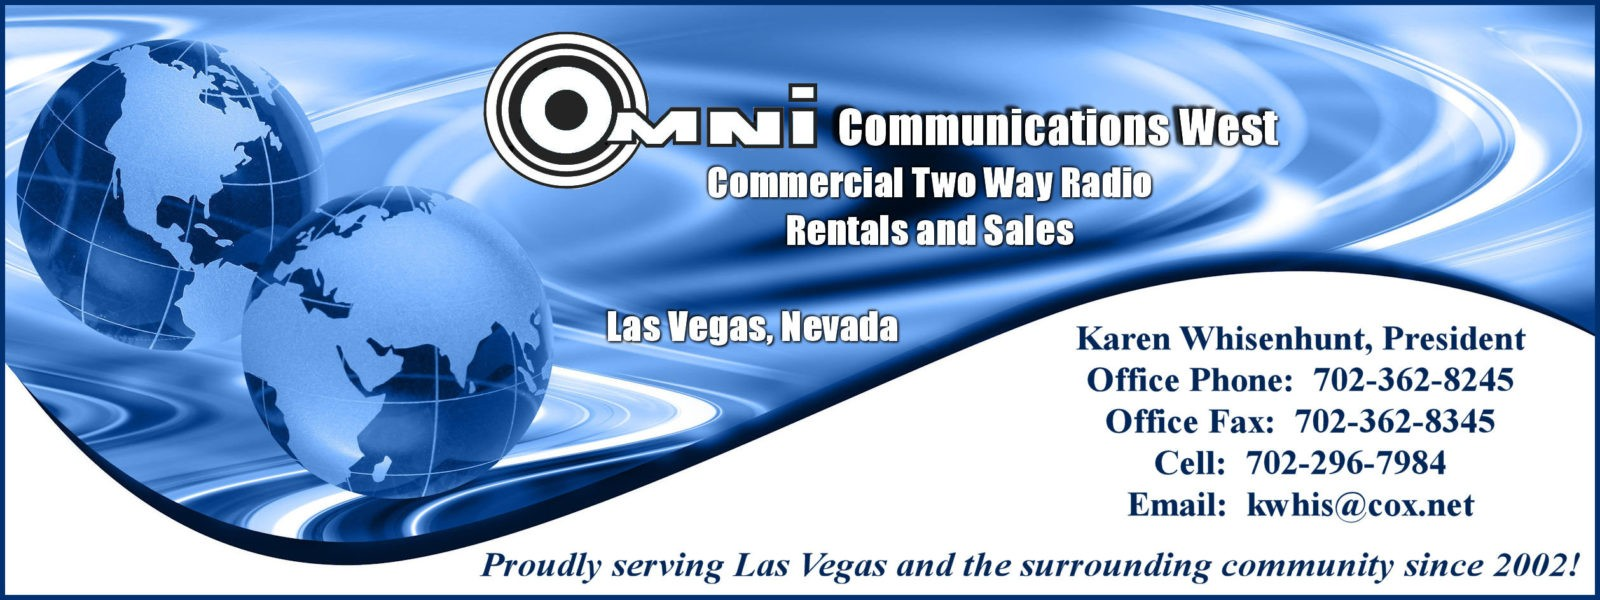 OMNI Communications West